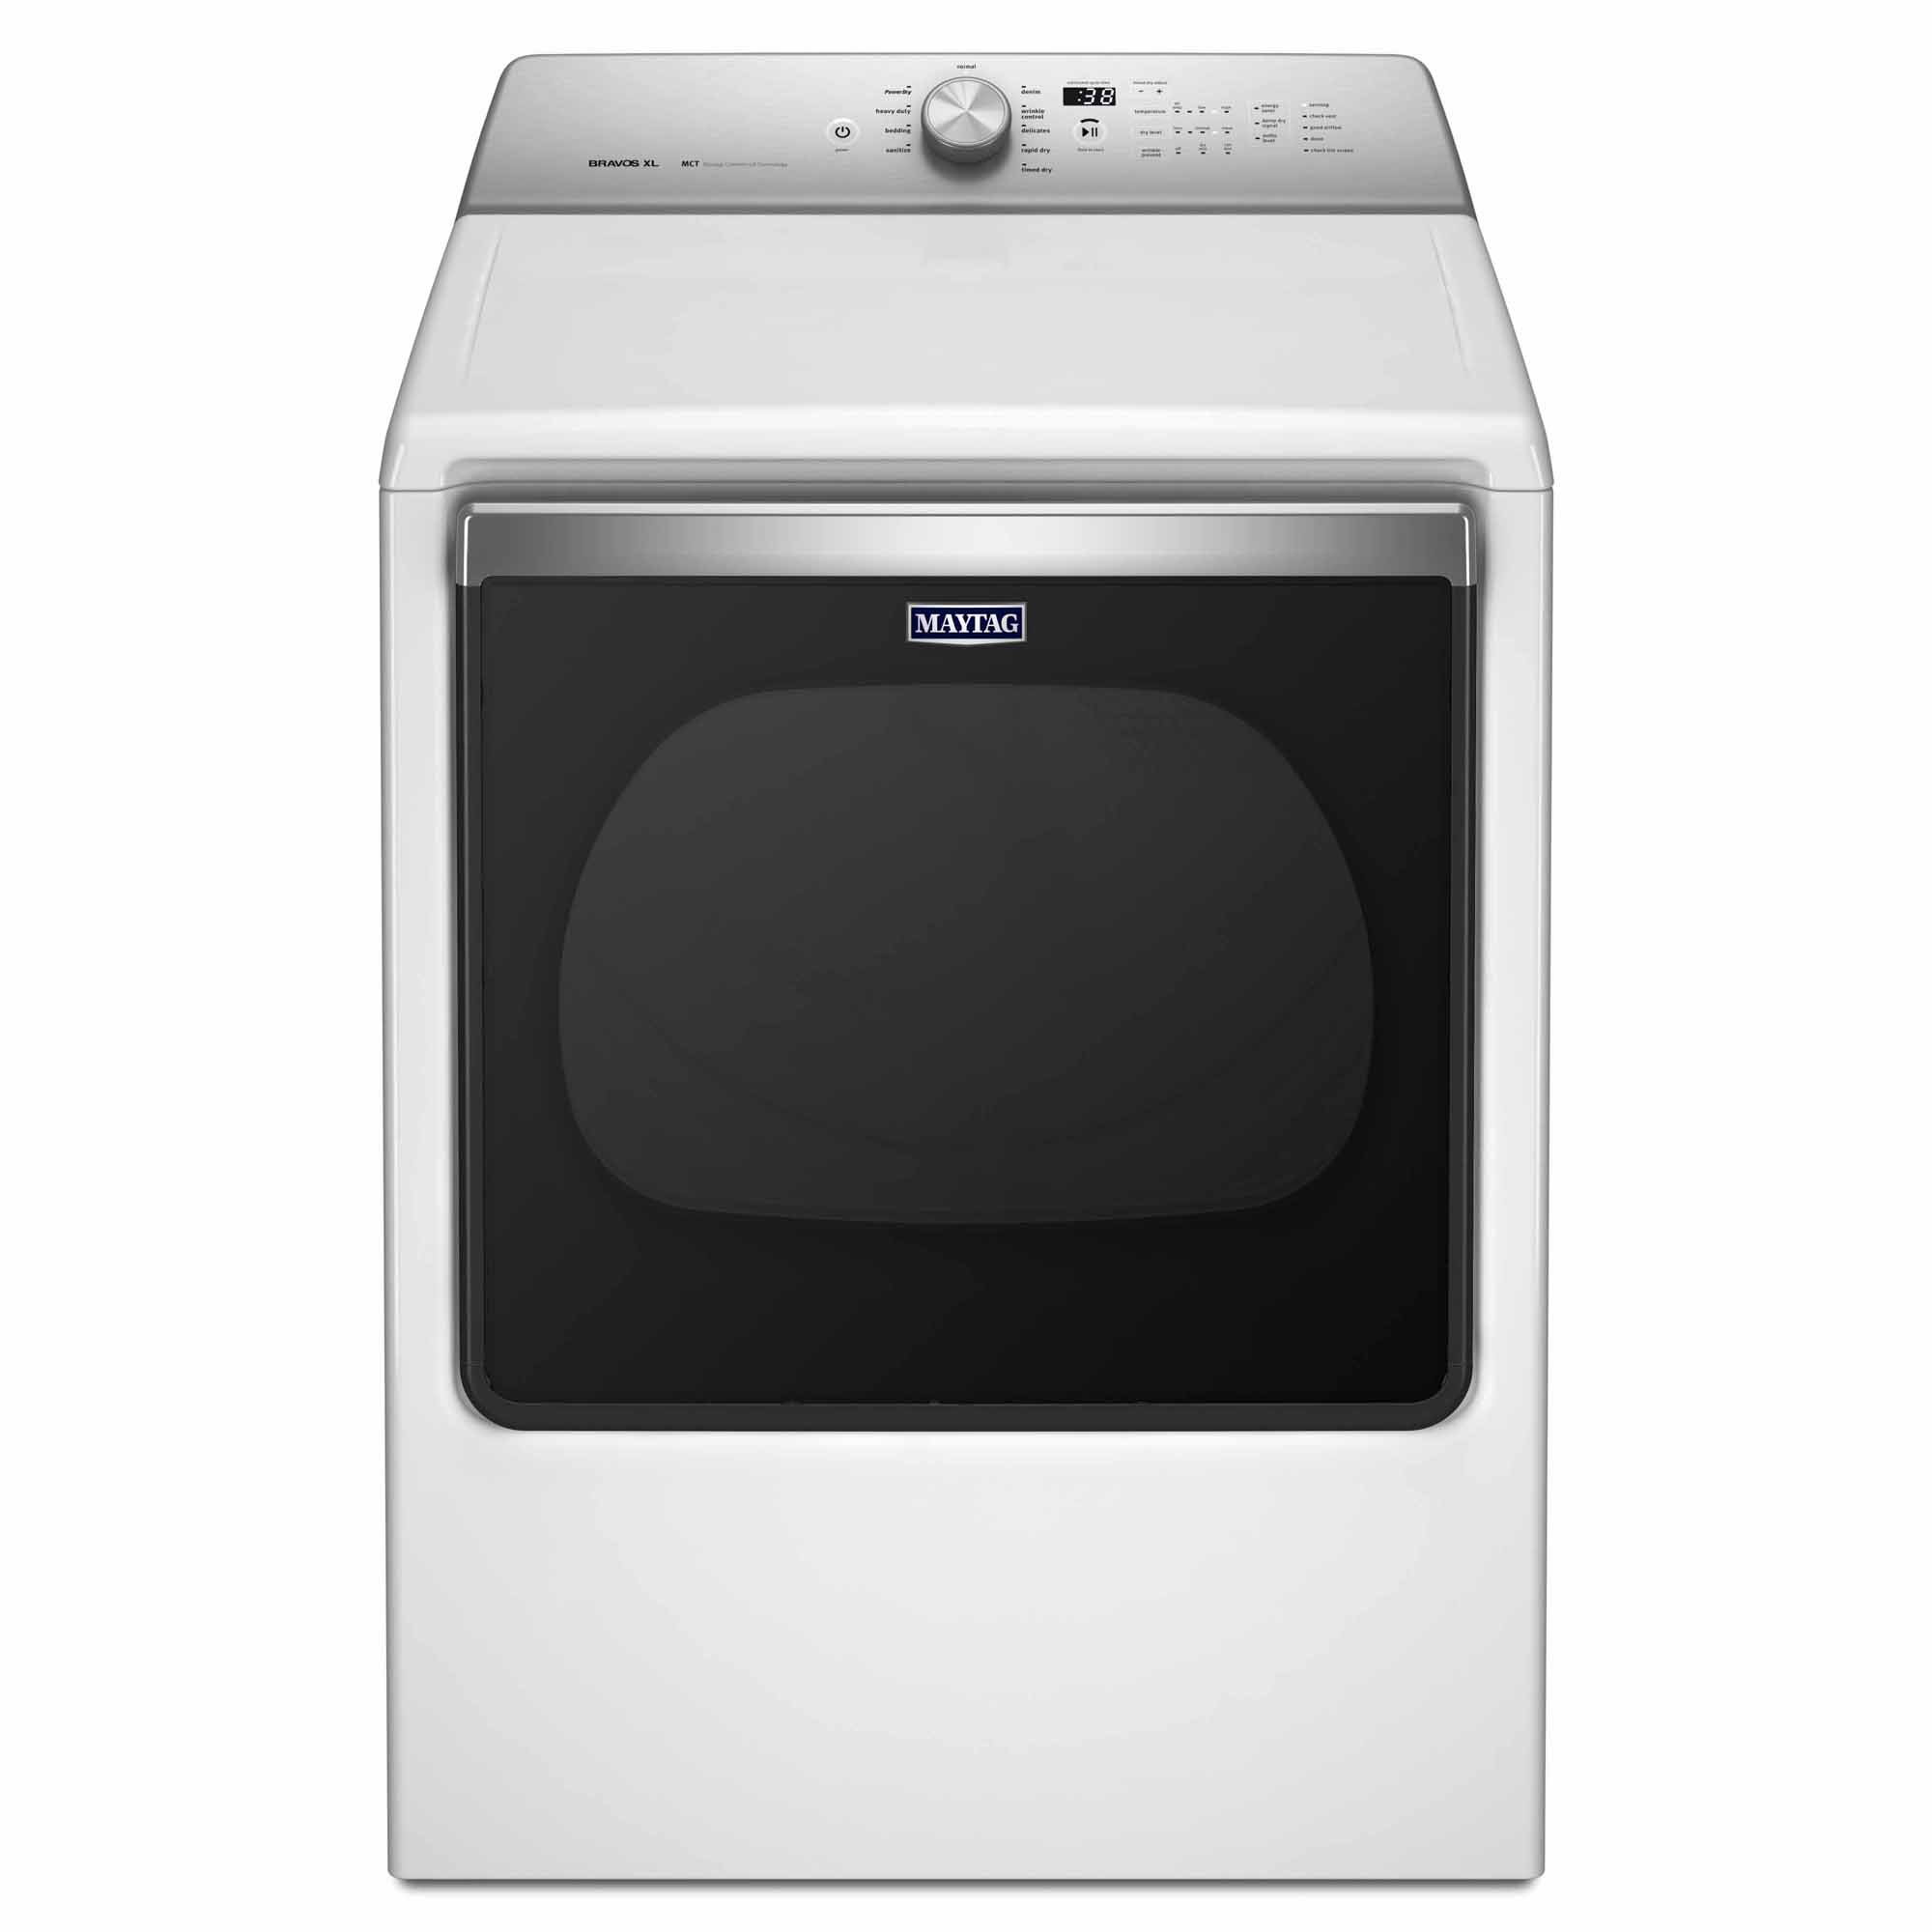 Maytag MEDB835DW Bravos 8.8 cu. ft. Electric Dryer - White